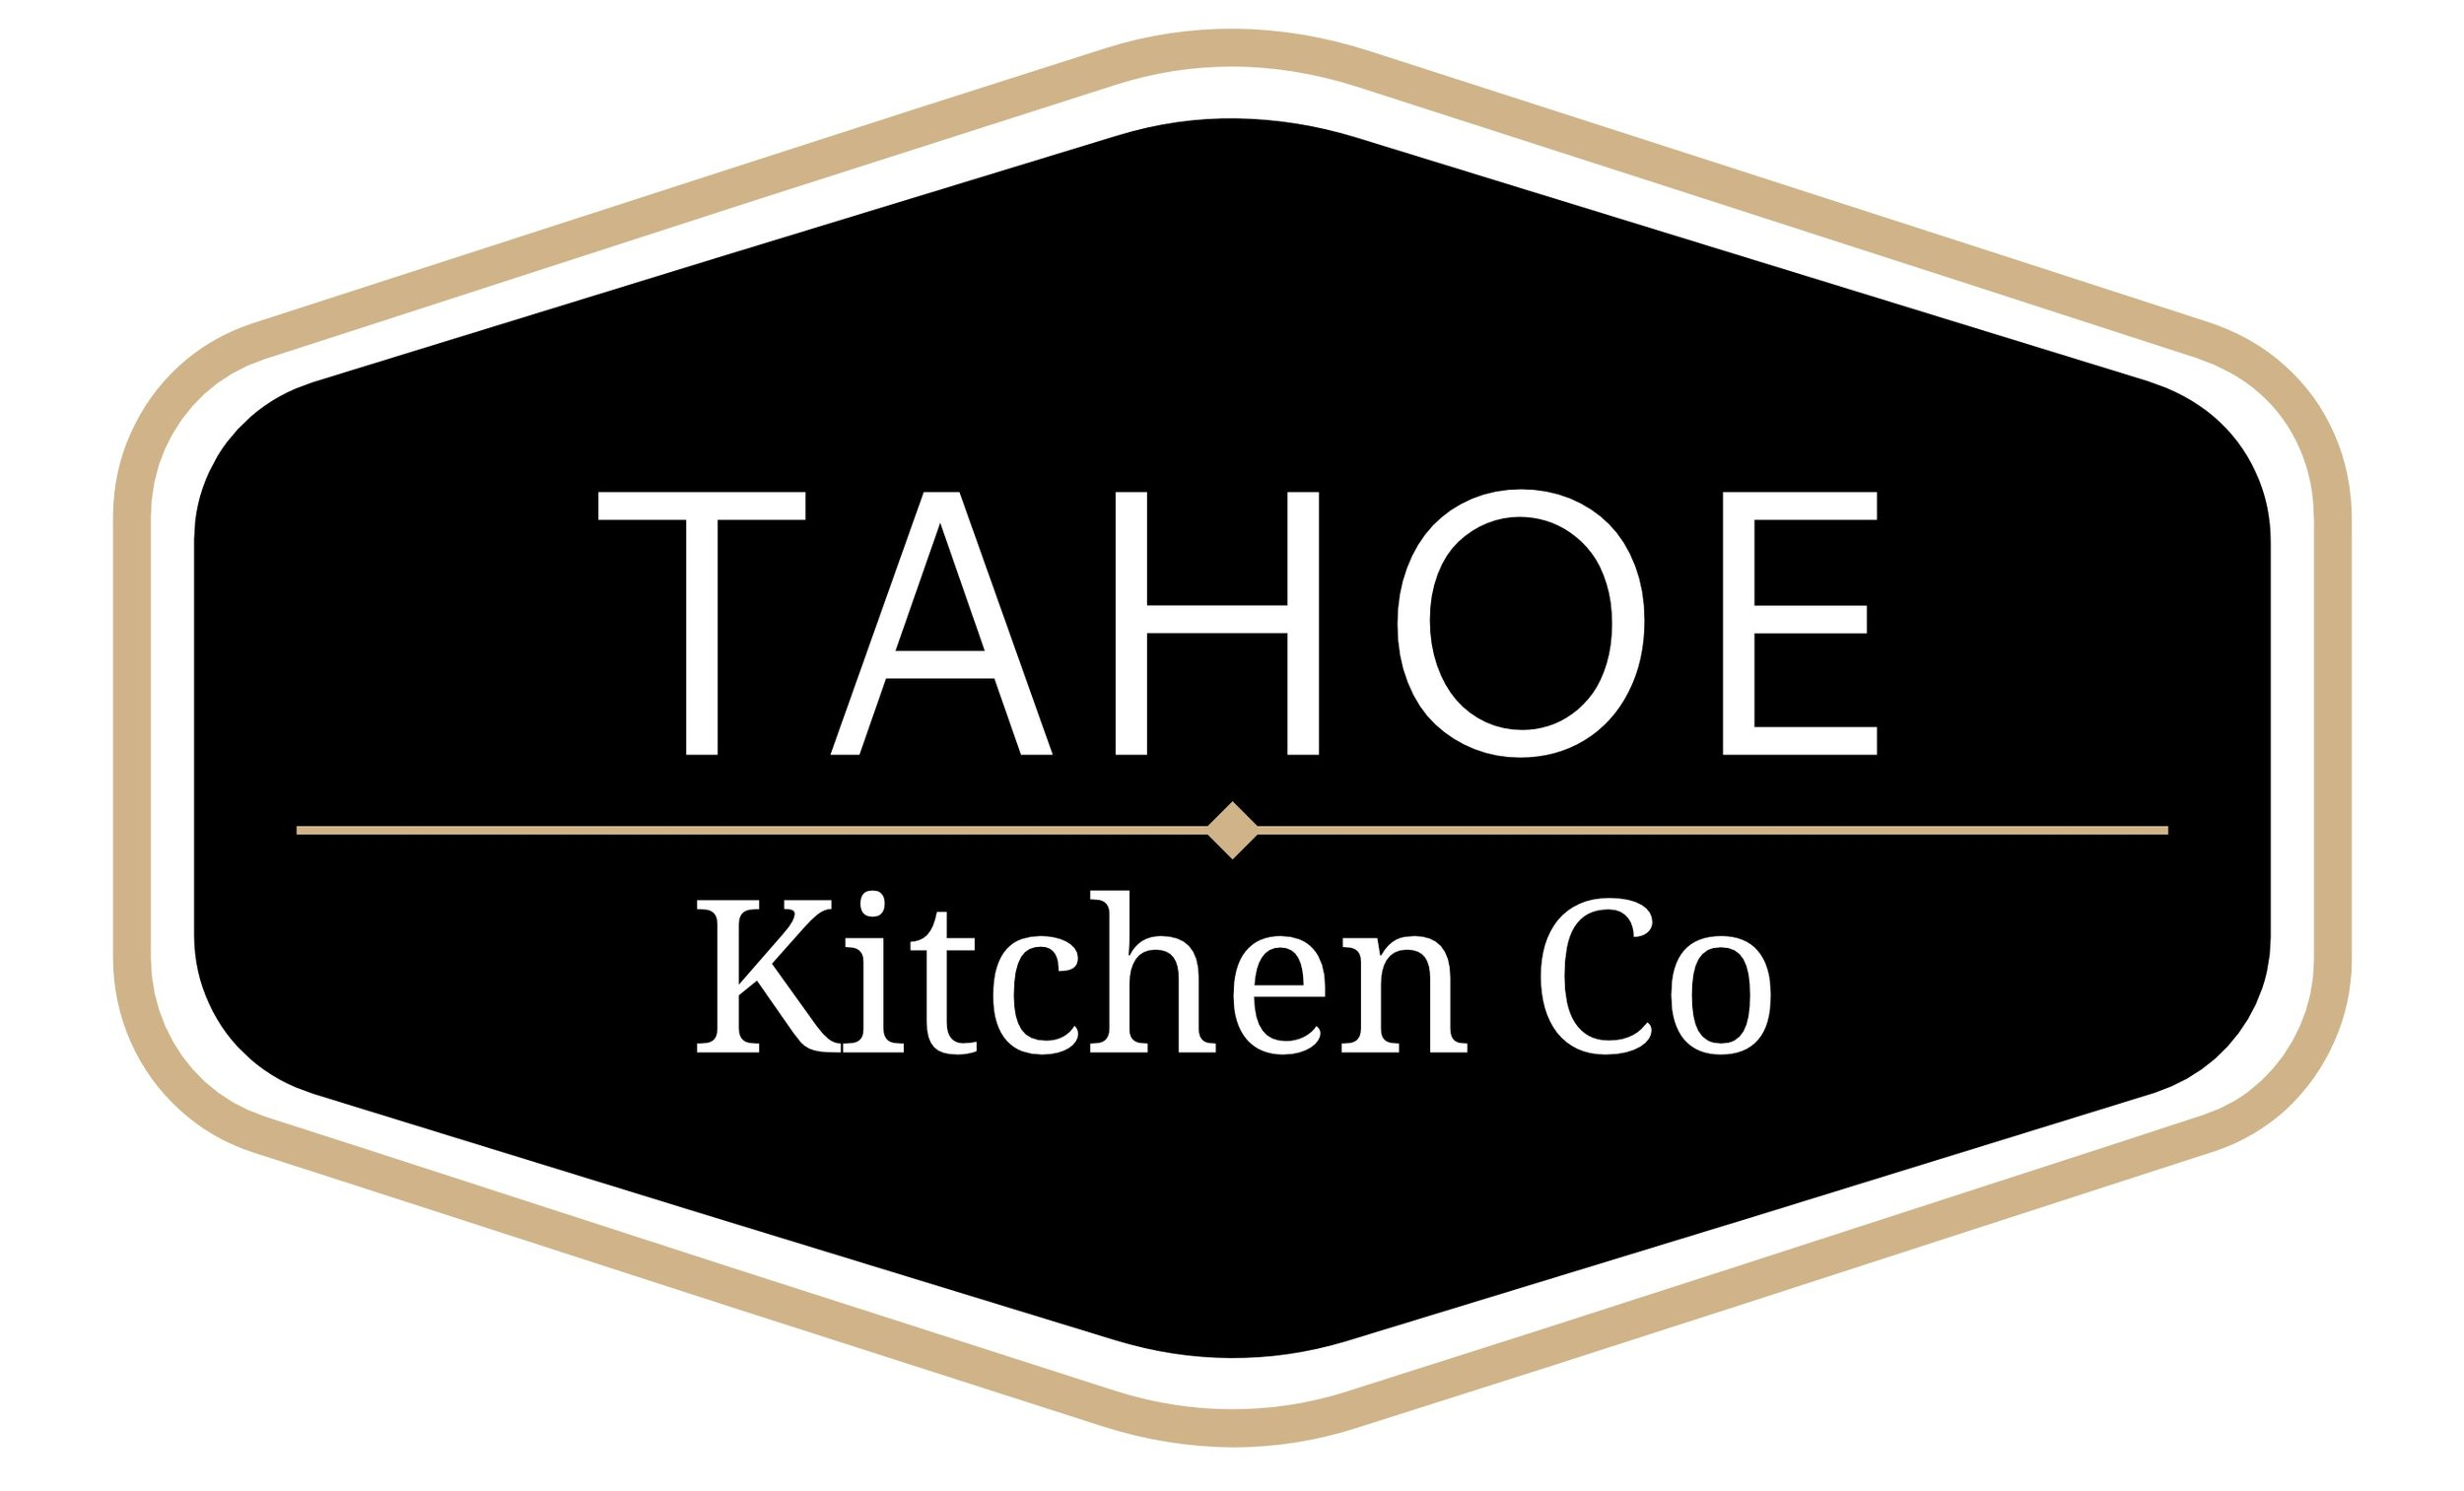 tahoe-kitchen-company.jpg